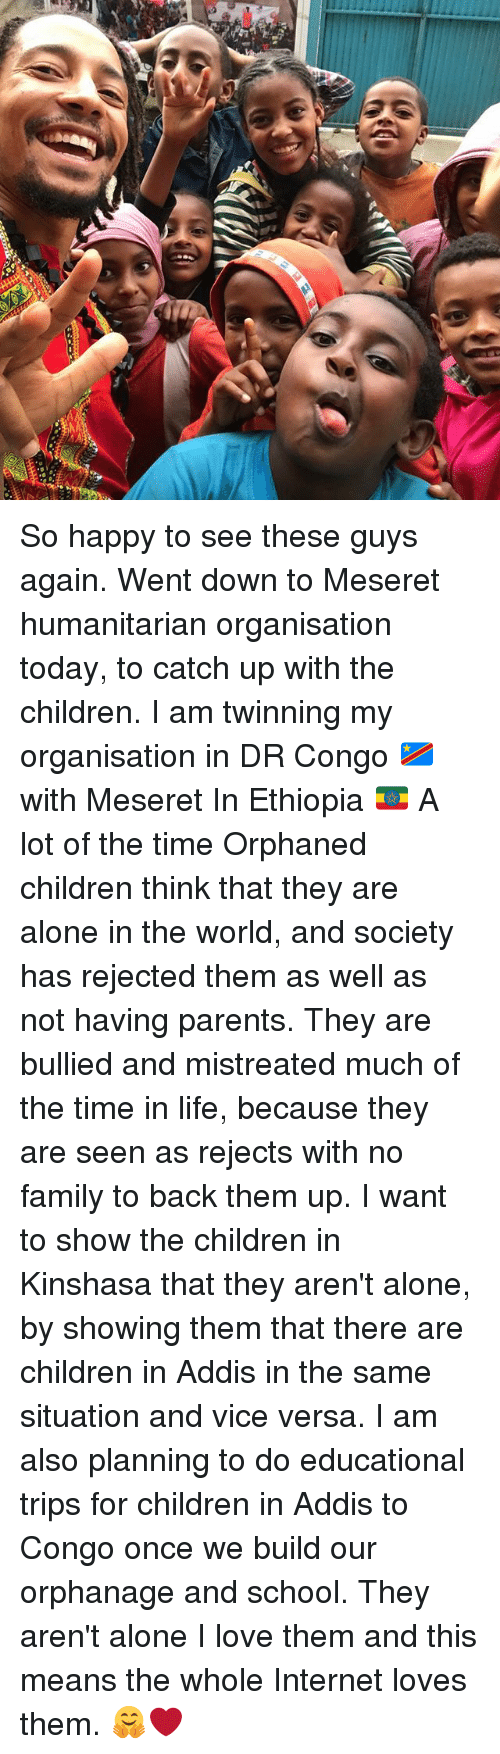 Being Alone, Children, and Family: So happy to see these guys again. Went down to Meseret humanitarian organisation today, to catch up with the children. I am twinning my organisation in DR Congo 🇨🇩 with Meseret In Ethiopia 🇪🇹 A lot of the time Orphaned children think that they are alone in the world, and society has rejected them as well as not having parents. They are bullied and mistreated much of the time in life, because they are seen as rejects with no family to back them up. I want to show the children in Kinshasa that they aren't alone, by showing them that there are children in Addis in the same situation and vice versa. I am also planning to do educational trips for children in Addis to Congo once we build our orphanage and school. They aren't alone I love them and this means the whole Internet loves them. 🤗❤️